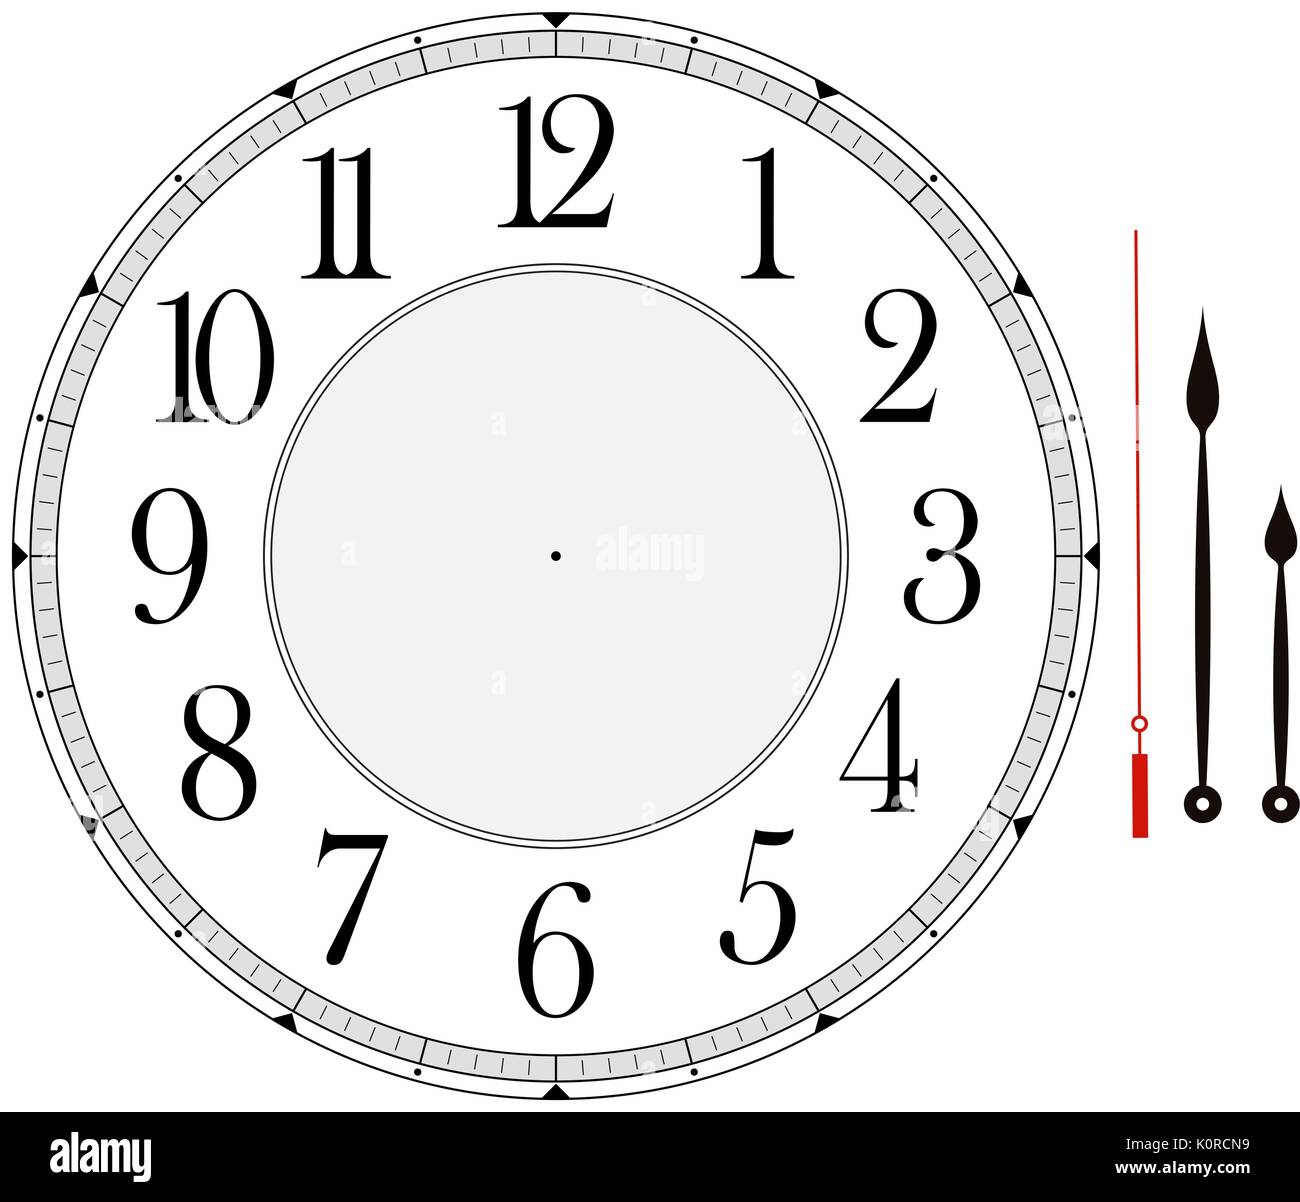 clock face template with hour, minute and second hands to make your ...